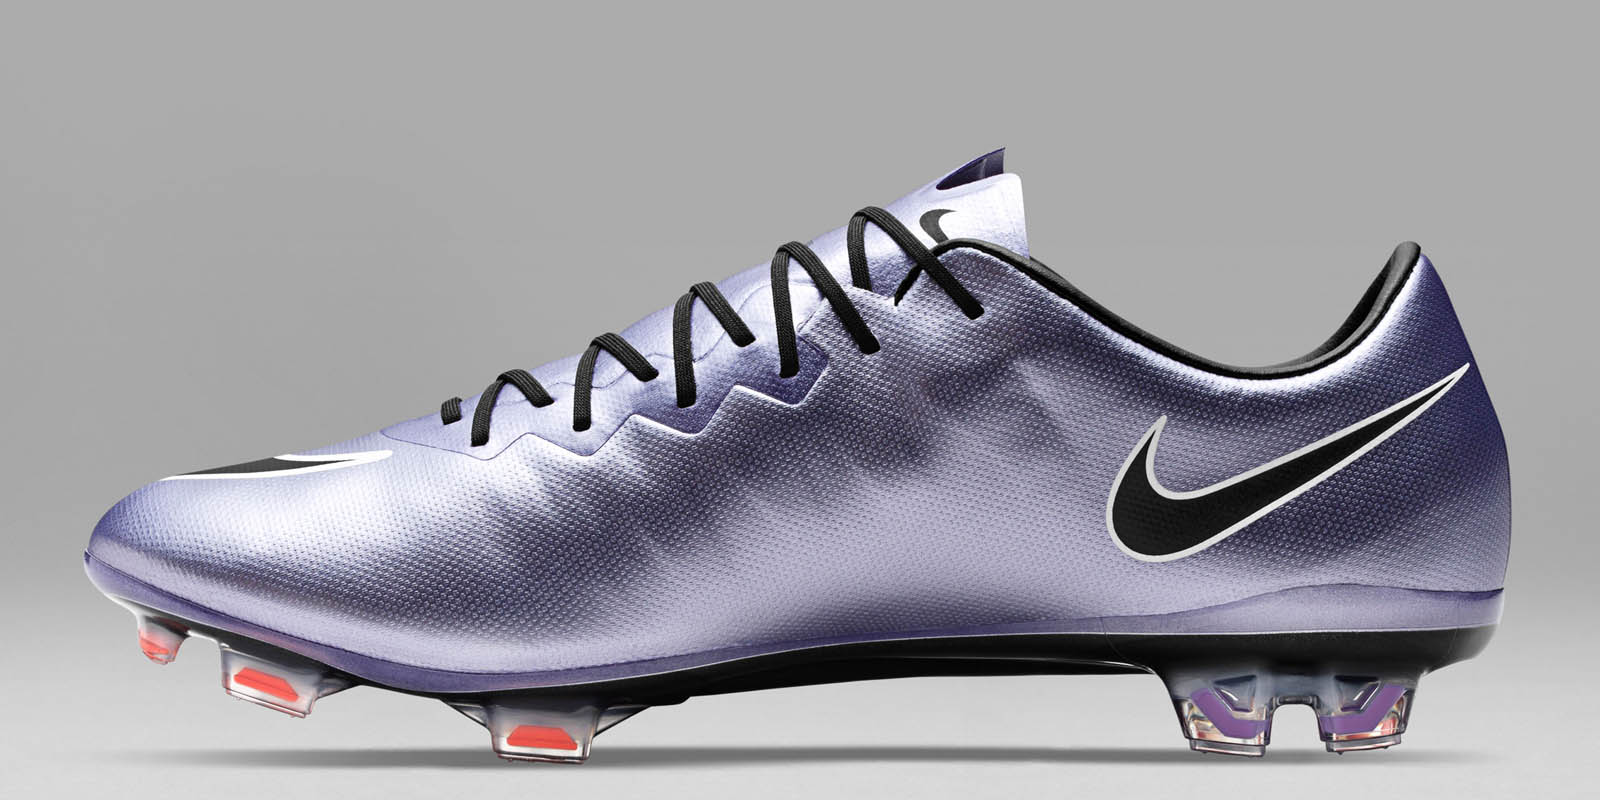 urban lilac nike mercurial vapor x 2016 boots released. Black Bedroom Furniture Sets. Home Design Ideas